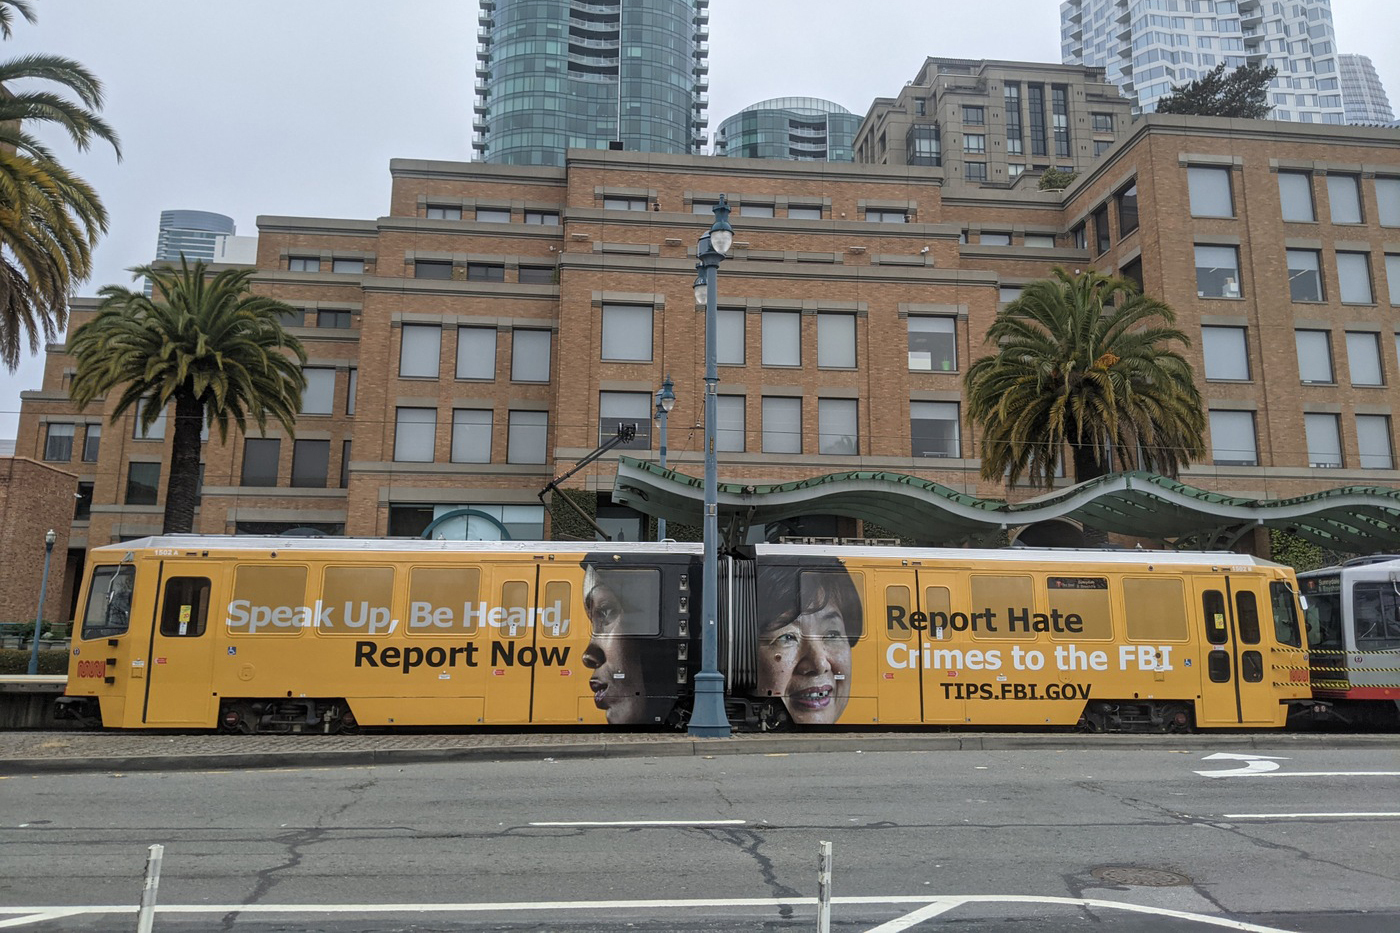 "In this image provided by the FBI, an ad on a San Francisco city train reads ""Speak Up, Be Heard, Report Now. Report Hate Crimes to the FBI."" as part of a publicity campaign by the San Francisco FBI office to encourage victims of hate crimes to come forward and report hate incidents, federal officials announced Thursday, May 6, 2021. It also launched a social media campaign that includes the photo of an elderly Asian woman and a message that reads, ""Did you know many hate crimes are not reported? The FBI wants to help but we need to hear from you."" (FBI via AP)"